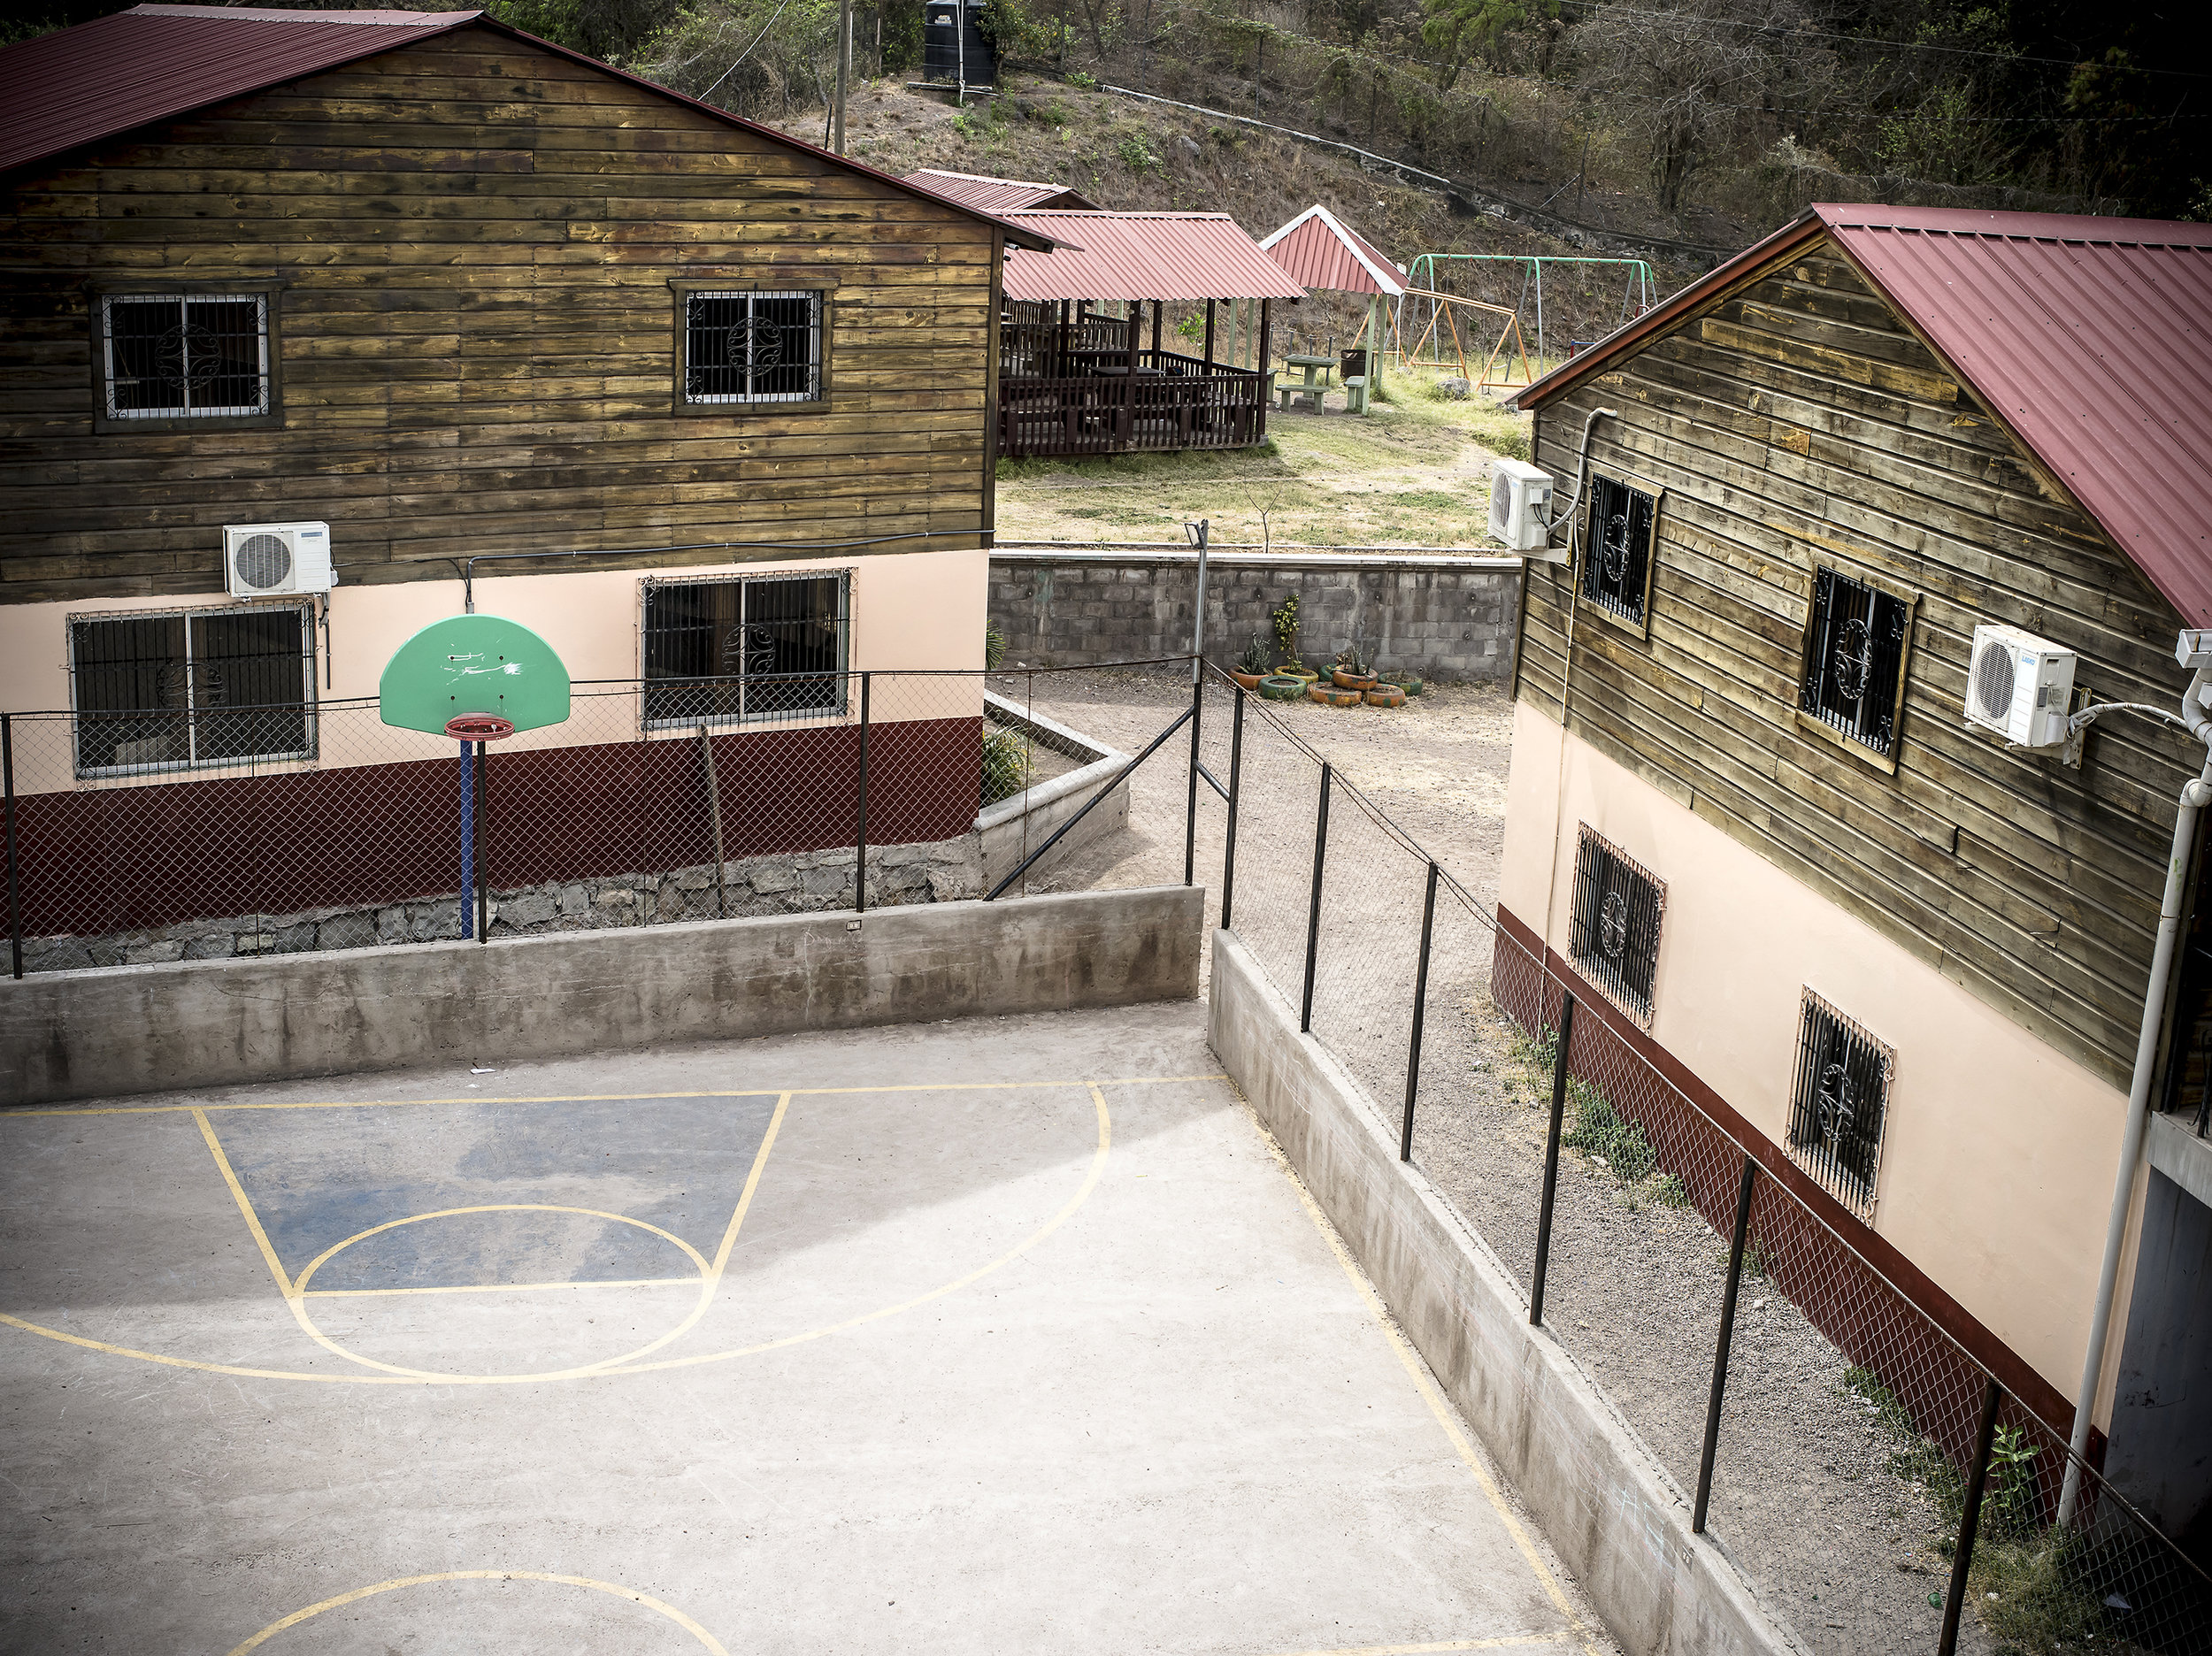 AFE have many buildings here you can see two school buildings with a basketball court.